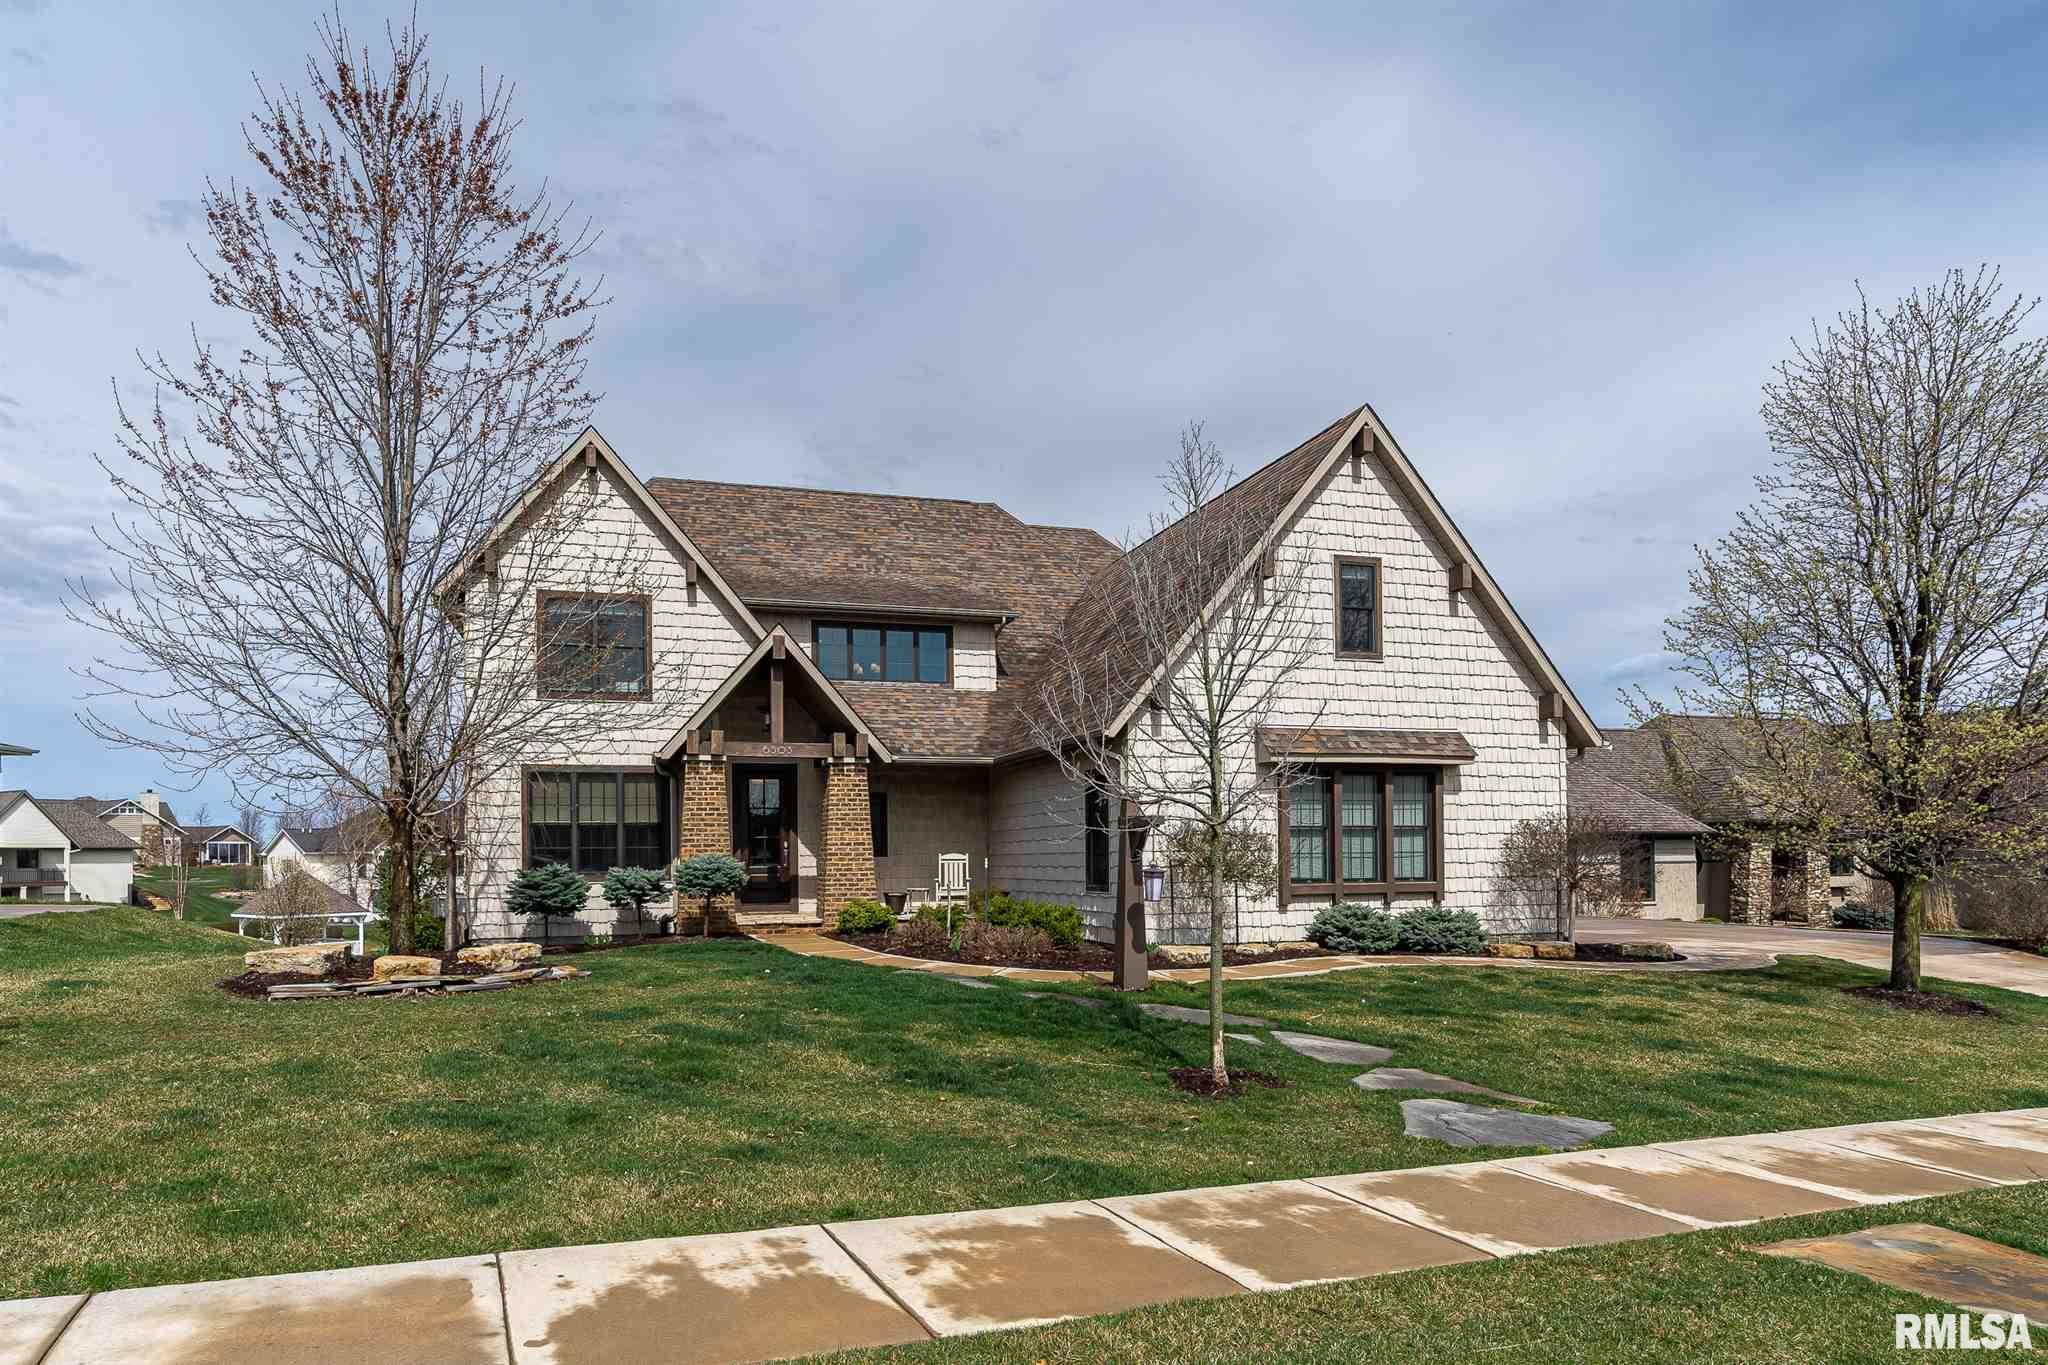 6503 BLACKBERRY Property Photo - Bettendorf, IA real estate listing